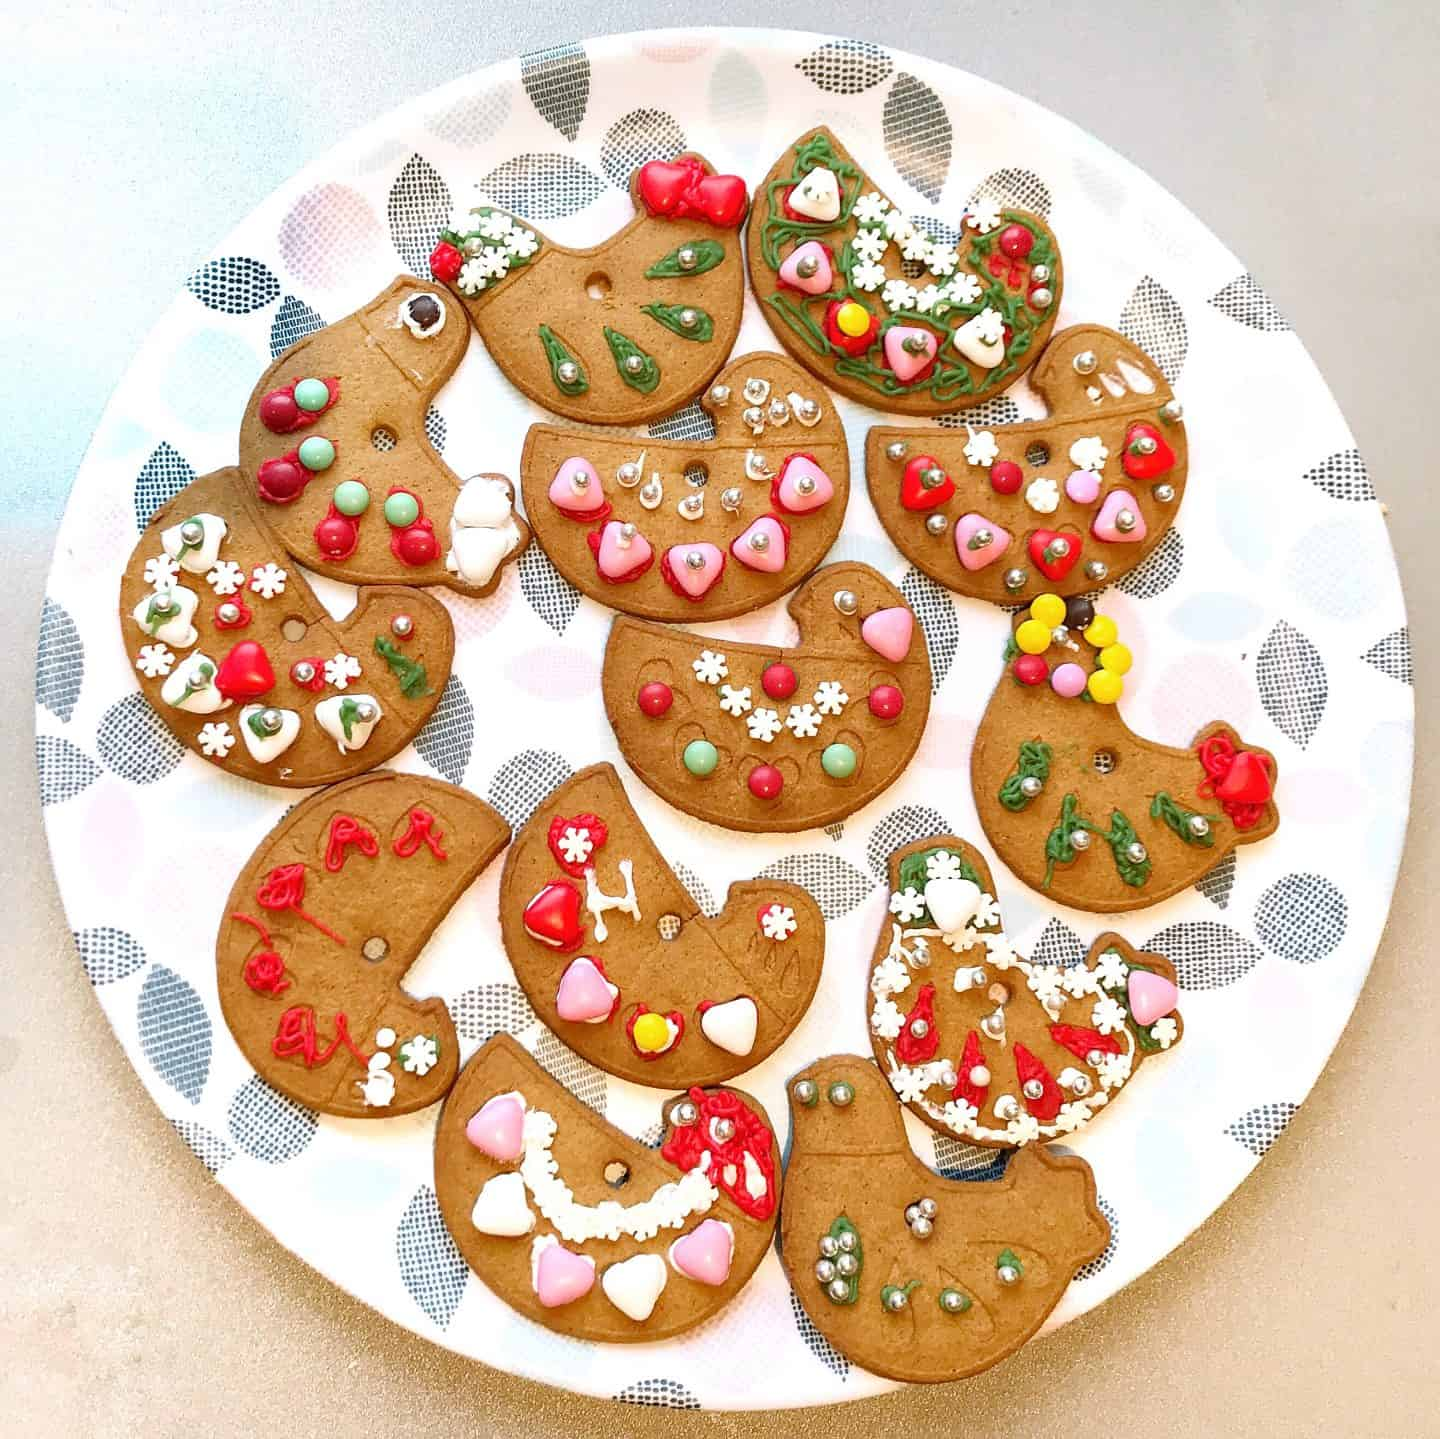 Ikea gingerbread biscuits decorated by kids